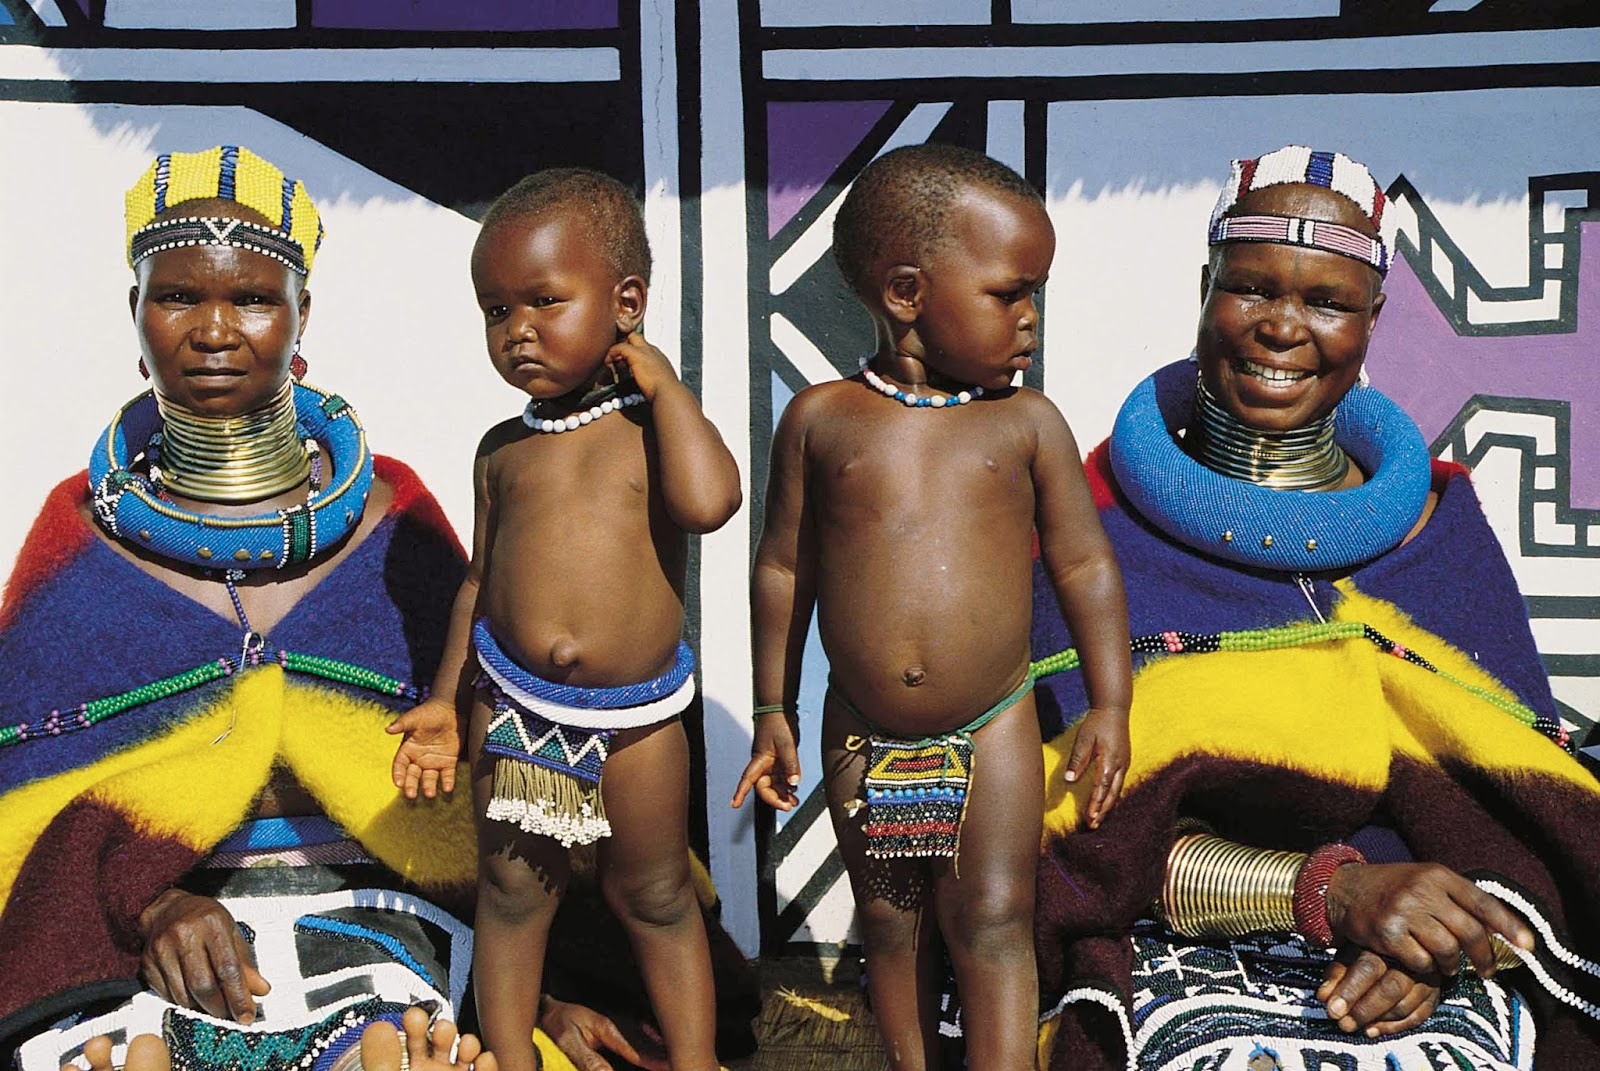 Local Fashion Traditional Dress And Adornments Of Ndebele